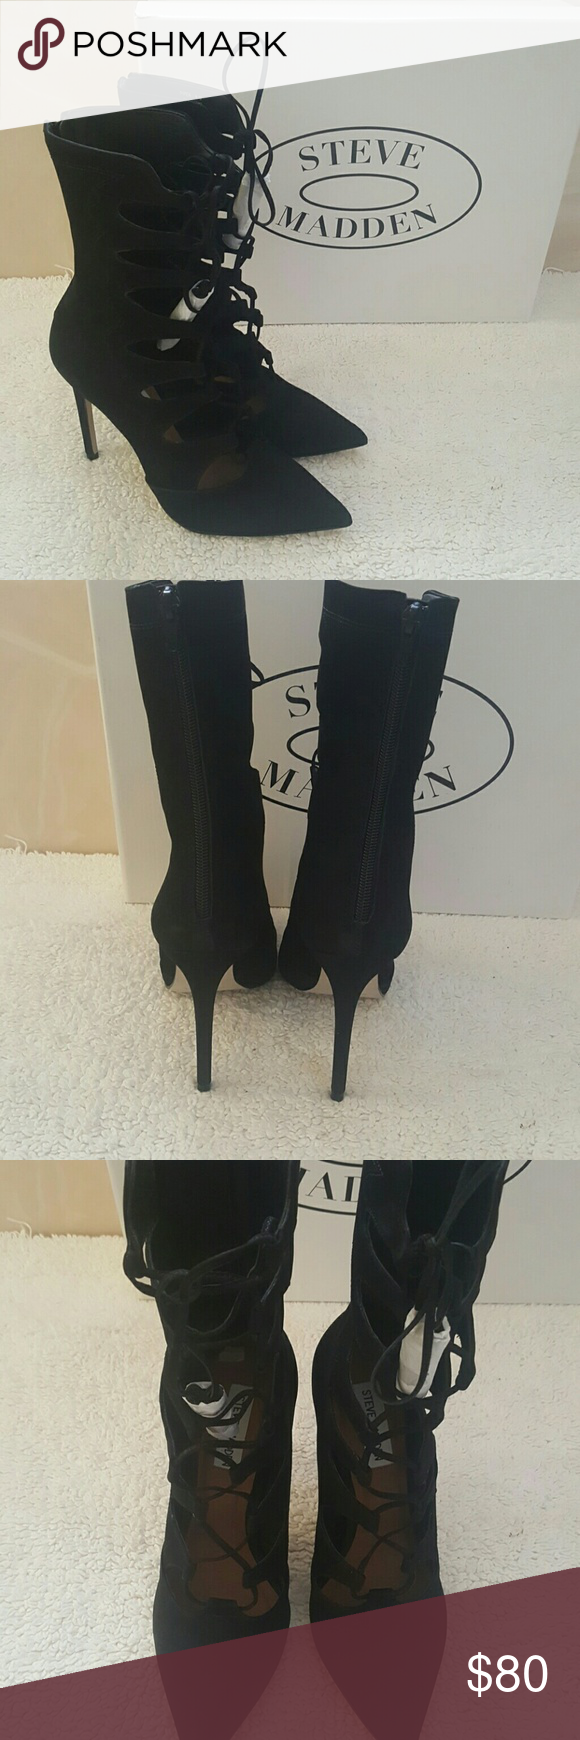 496b9727a8e Sale....Steve Madden Sz 8 Leather Piper Bootie Listed for $80 Nubuck ...